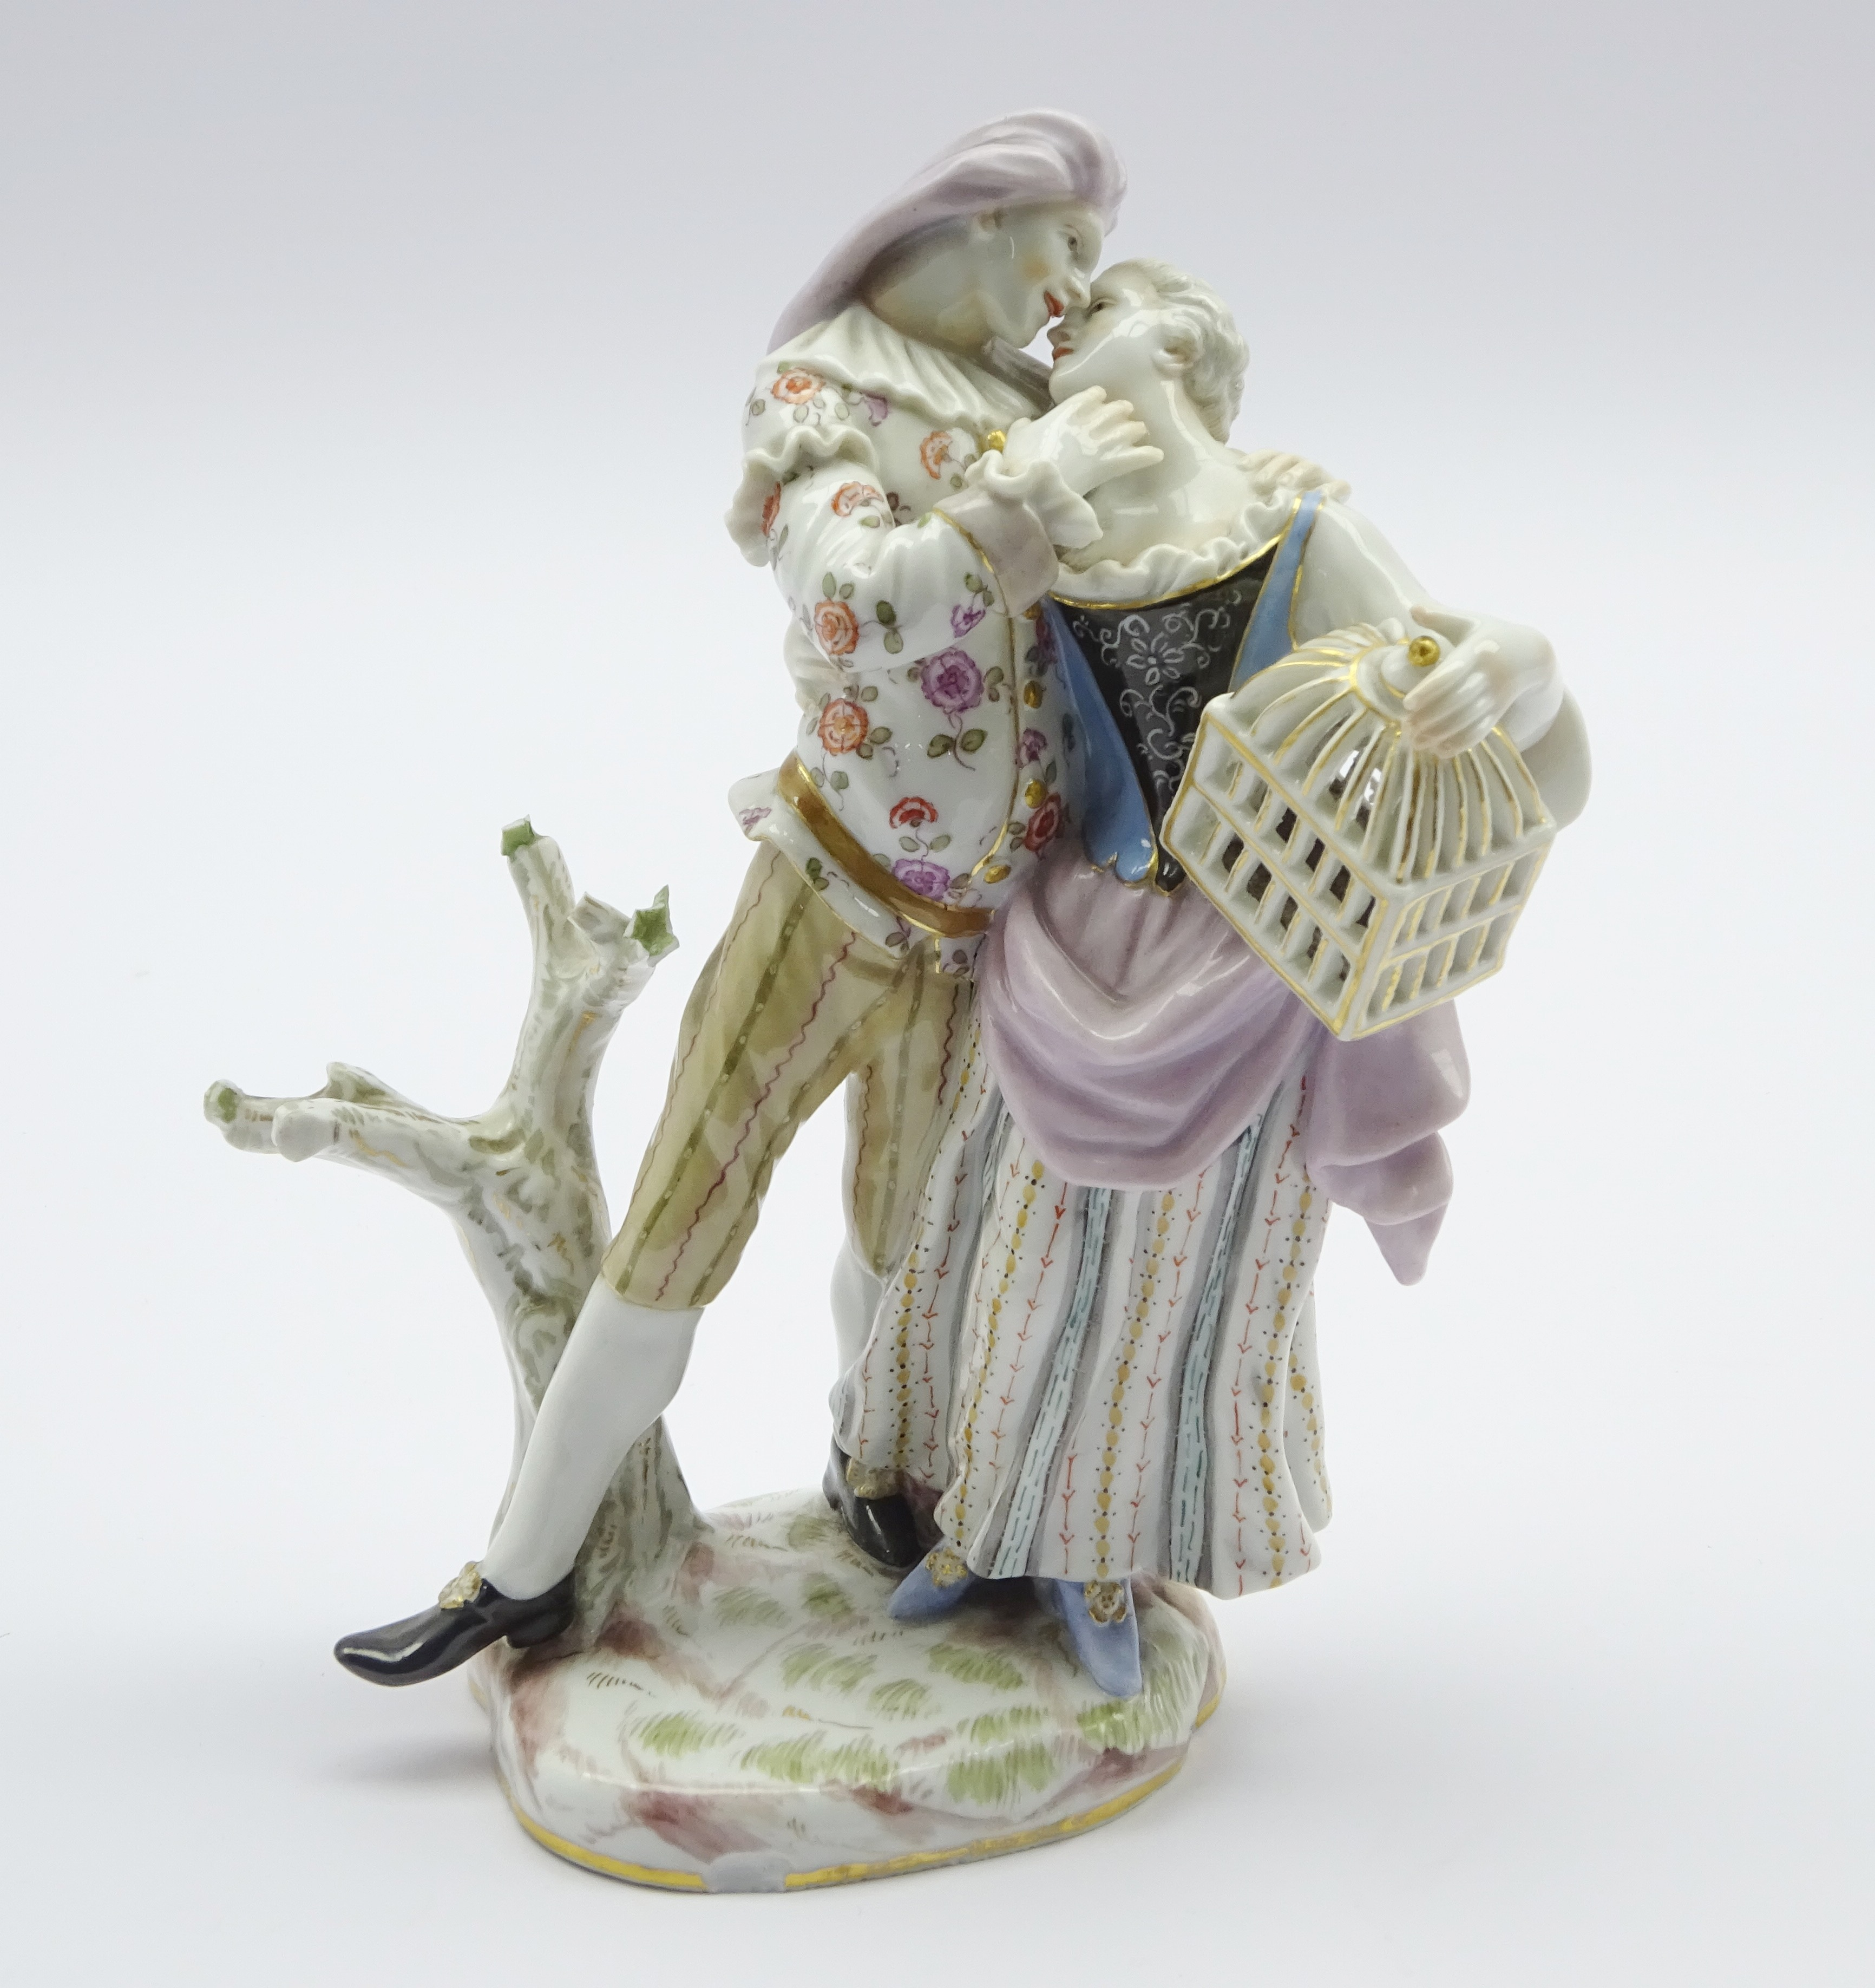 Lot 24 - 19th century Meissen figure of a couple embracing, the woman carrying a bird cage, incised 169, H17.